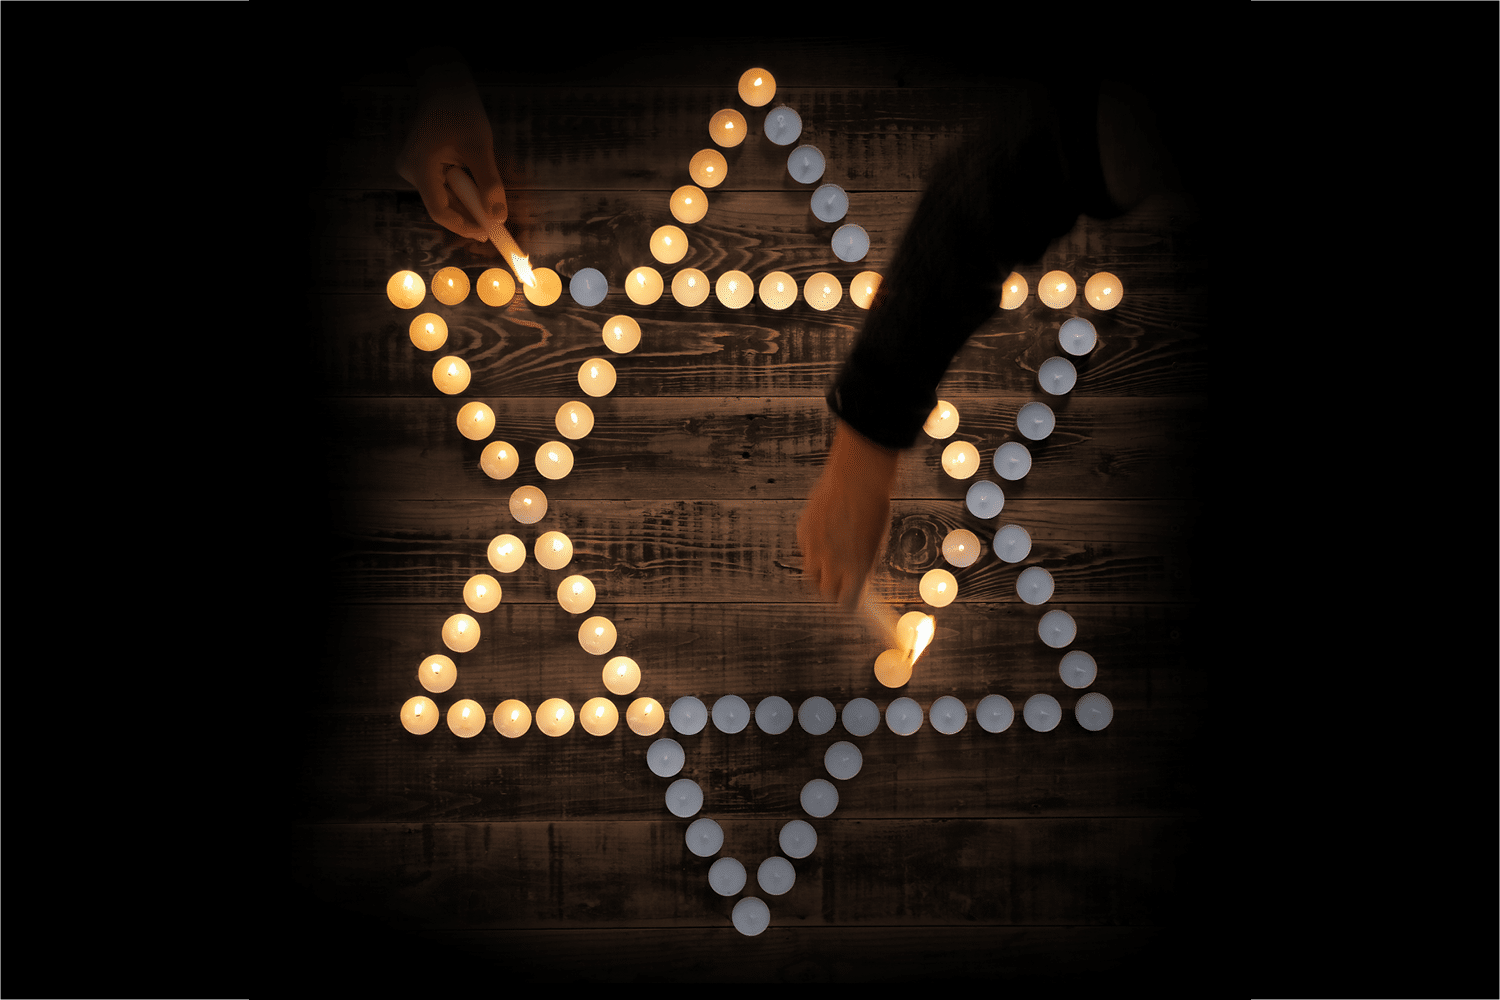 Two people lighting candles in the shape of the Jewish Star of David.